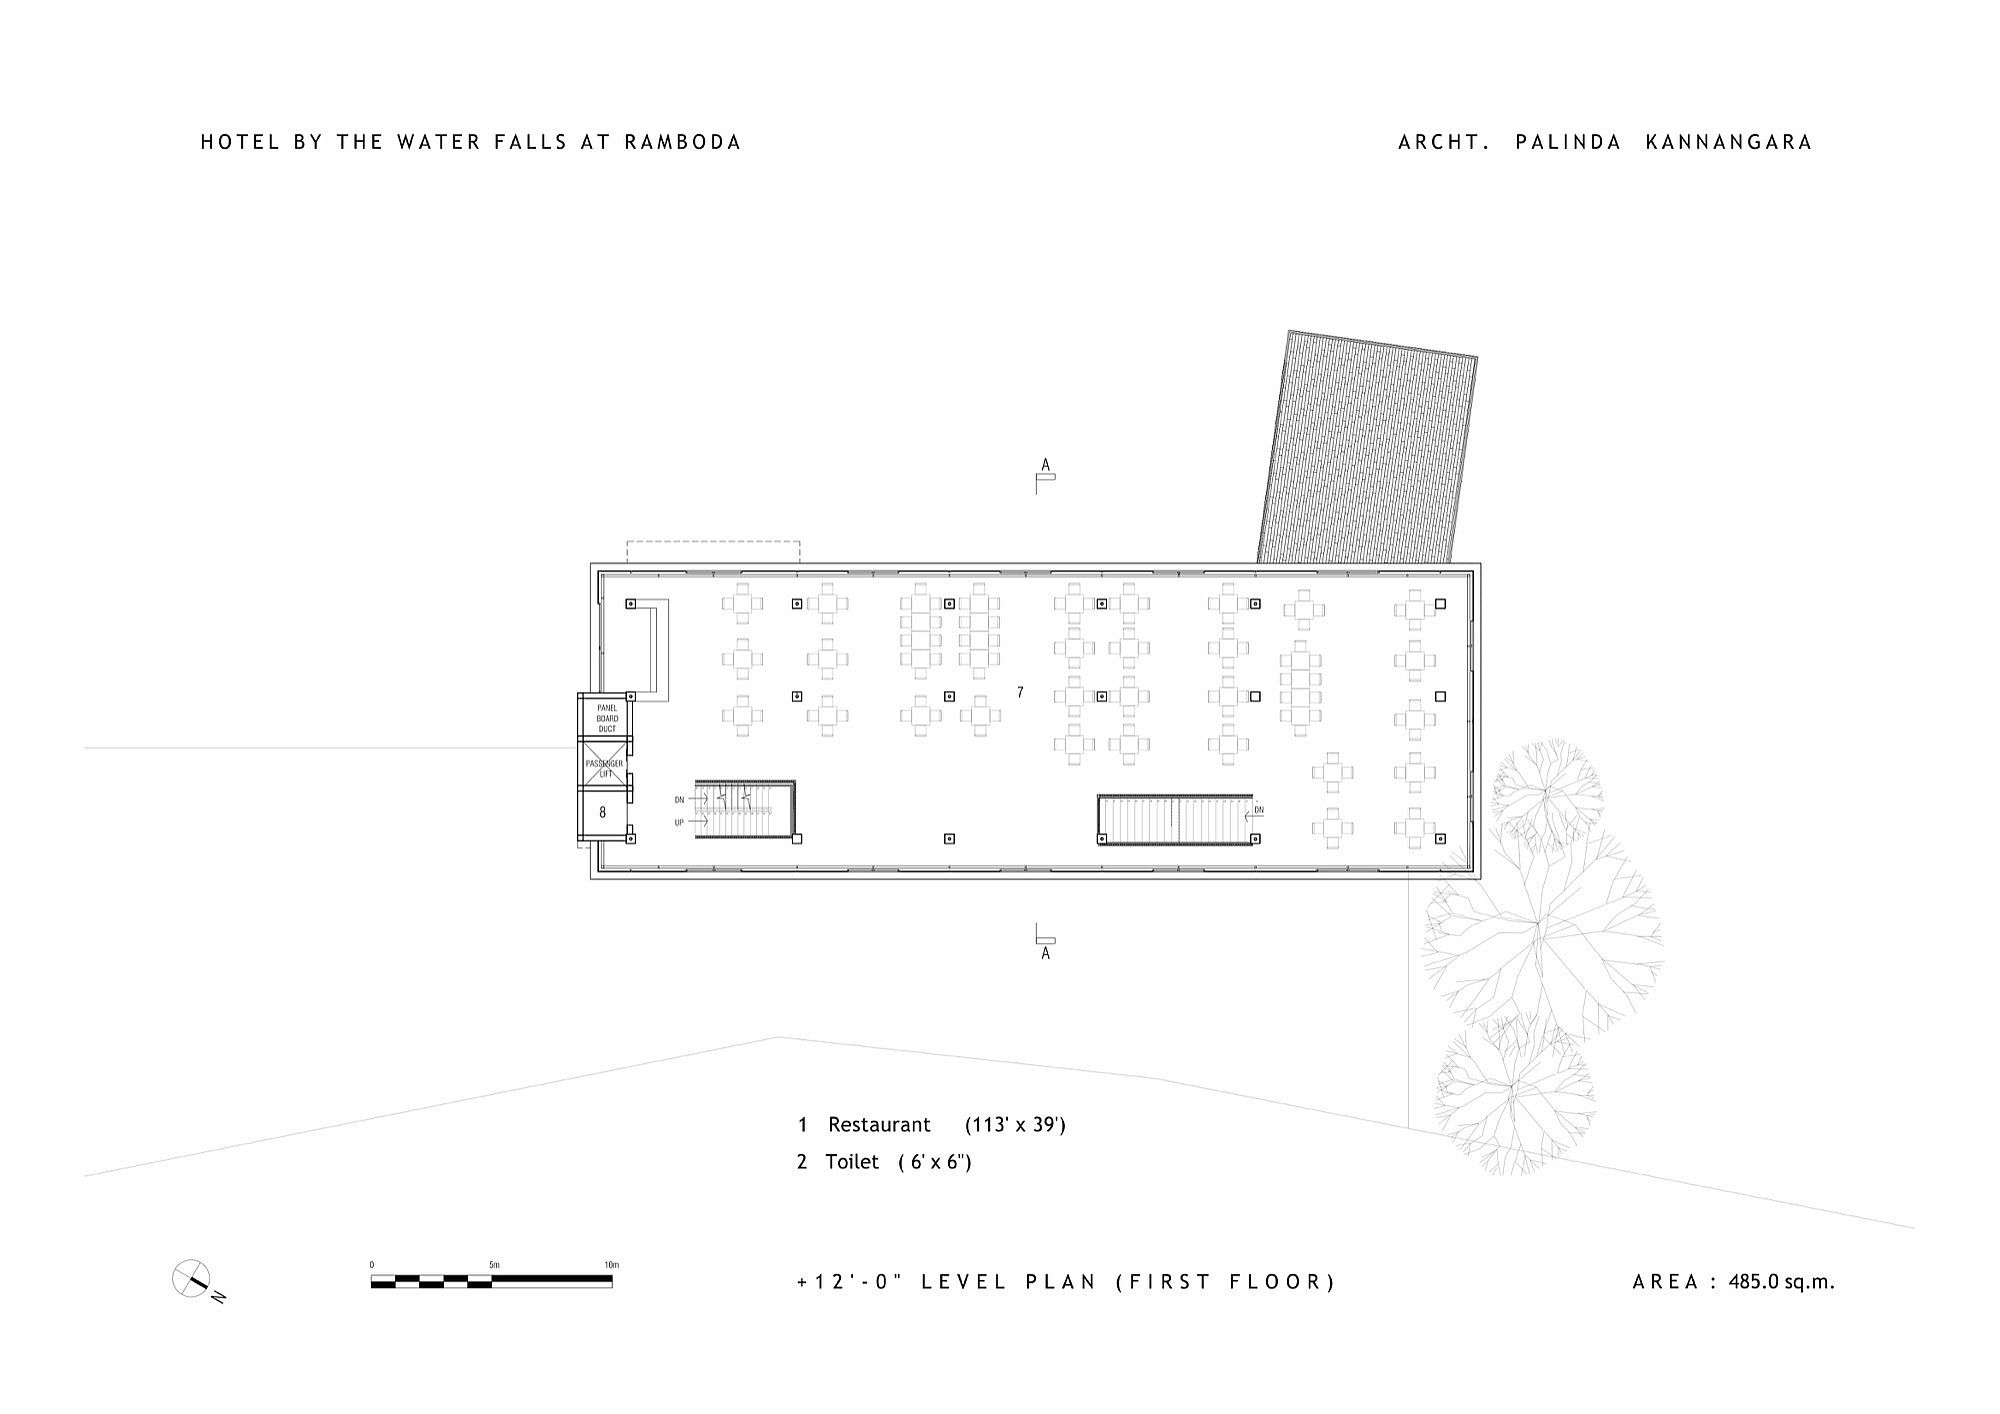 Second level floor plan of the Hotel by the Water Falls